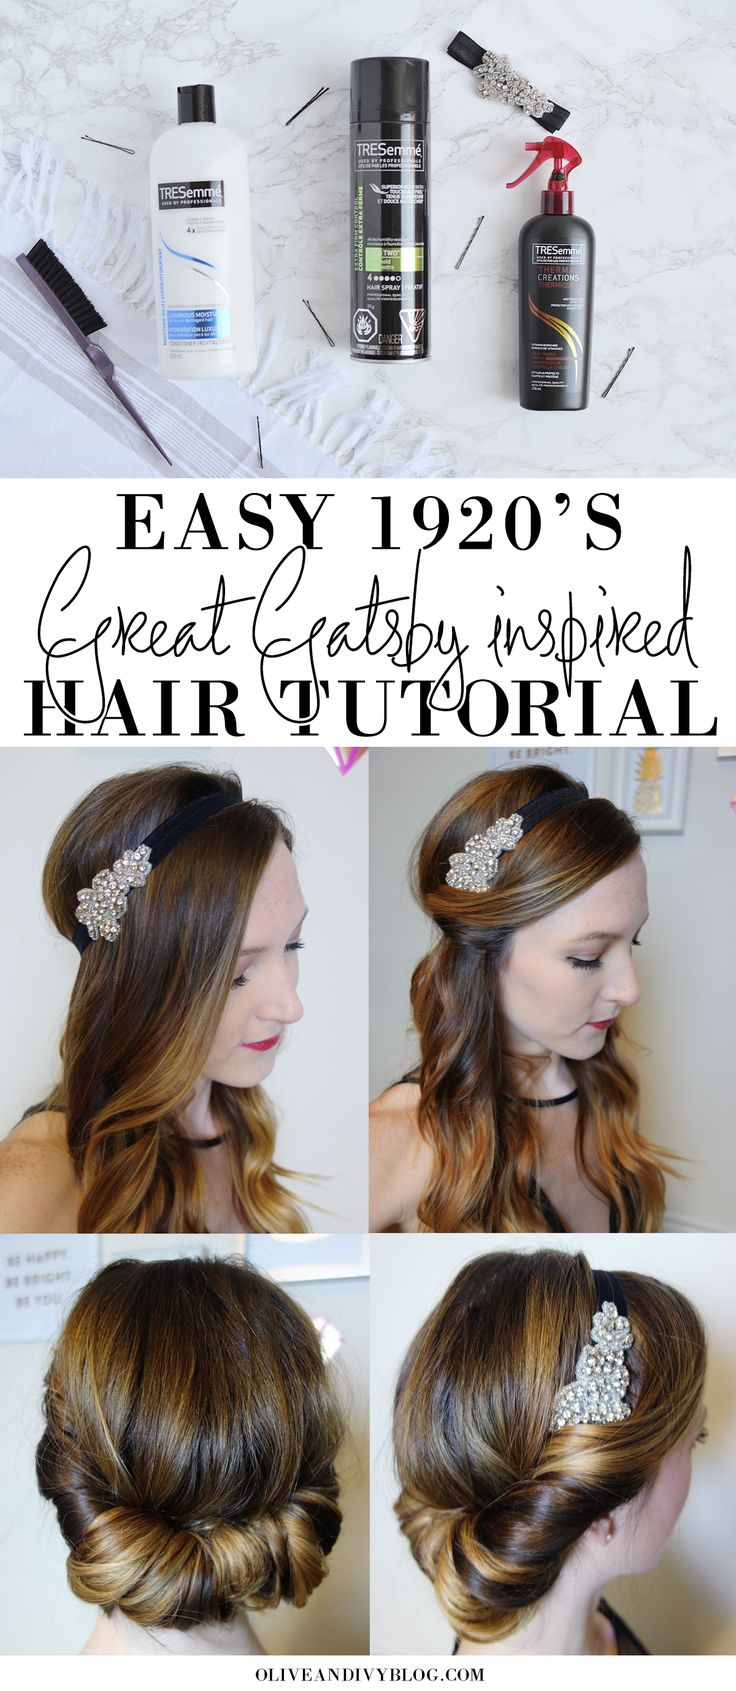 9 best 1920s Cabaret party images on Pinterest | Cute hairstyles ...